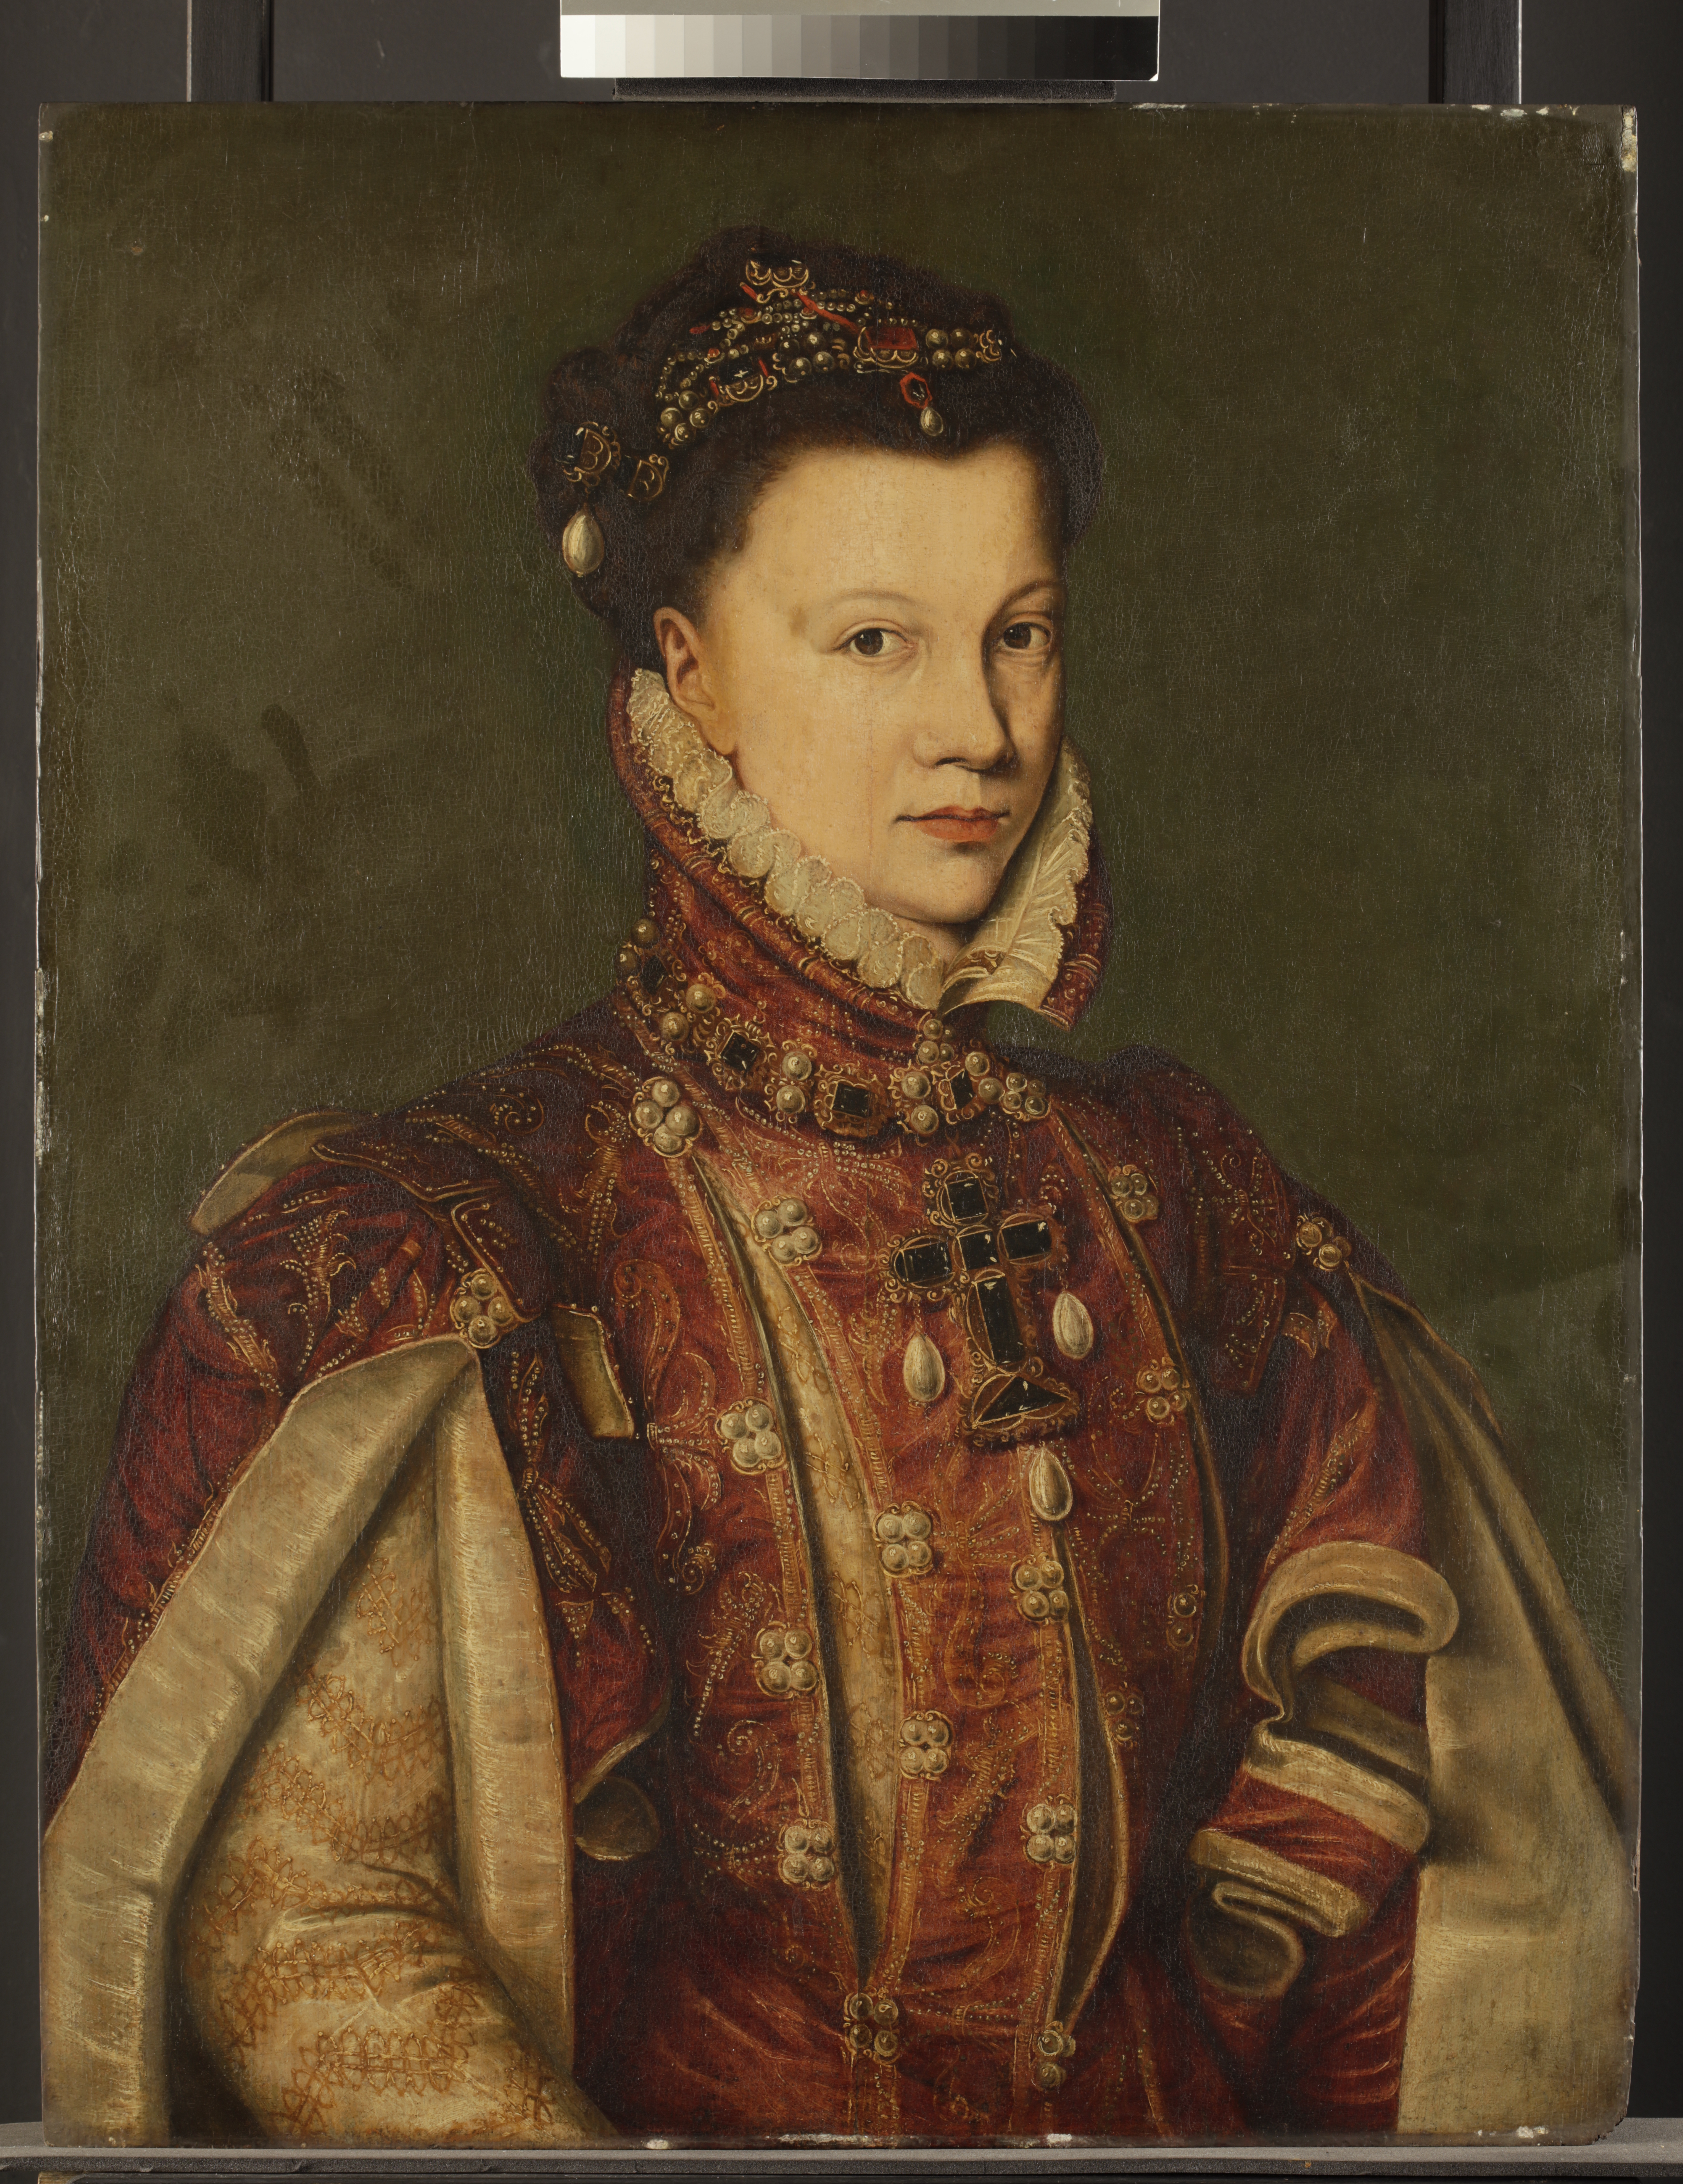 Fig. 1.Portrait of Elisabeth de Valois, copy after Anthonis Mor by unknown artist, late 16th century, Fitzwilliam Museum. (© Titmus)